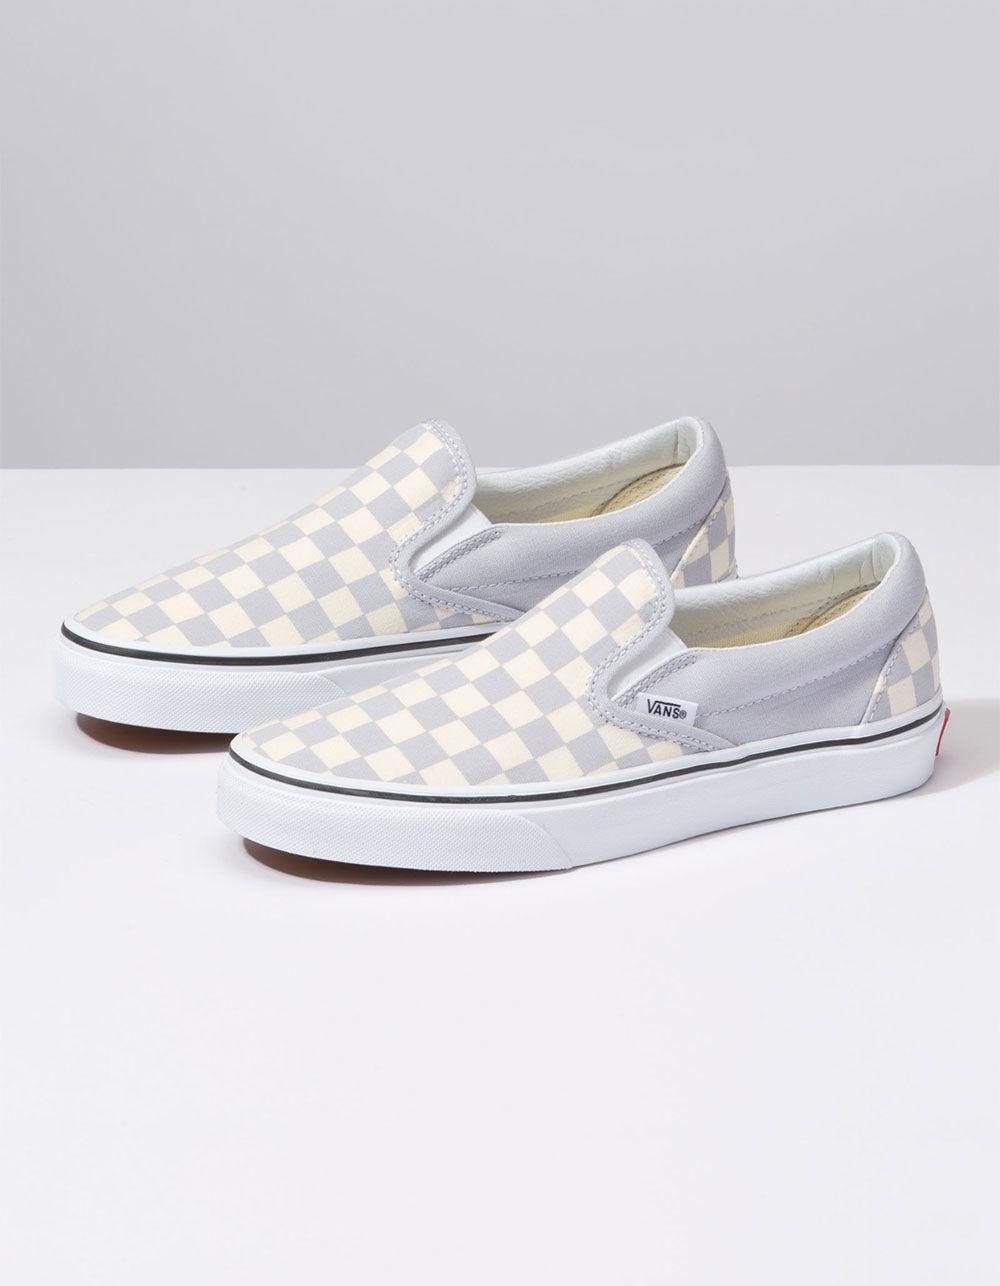 bdfa3f8bb960aa Lyst - Vans Checkerboard Gray Dawn   True White Womens Slip-on Shoes in  White